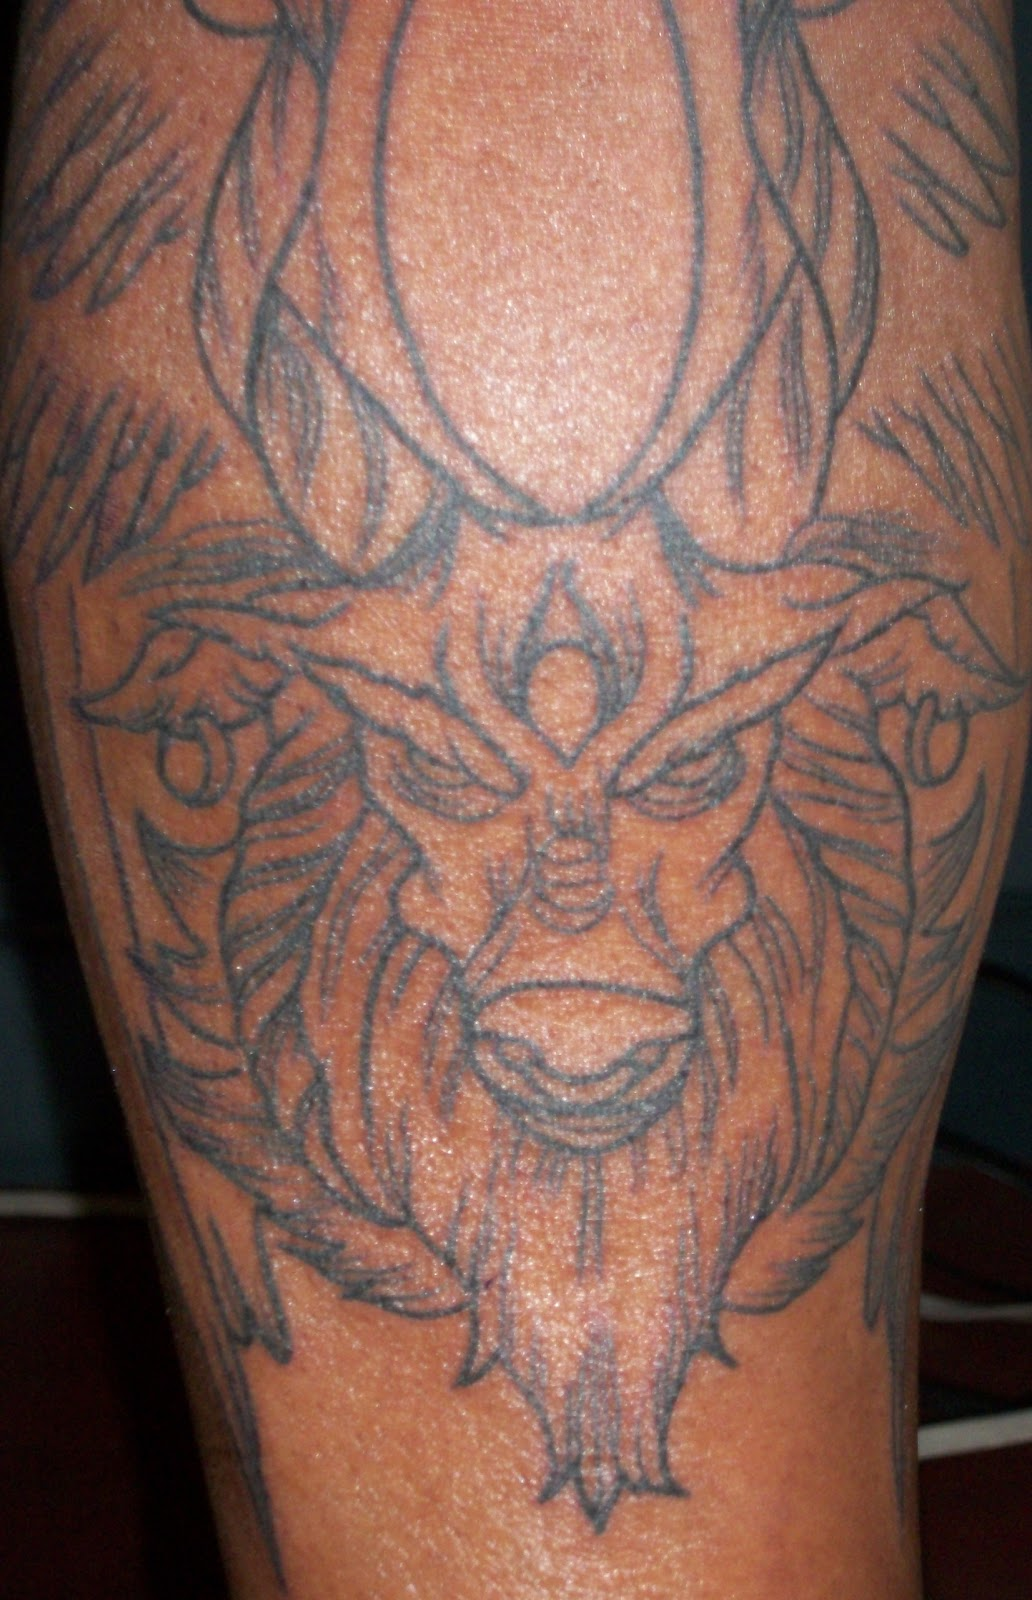 Evil goat tattoo - photo#5